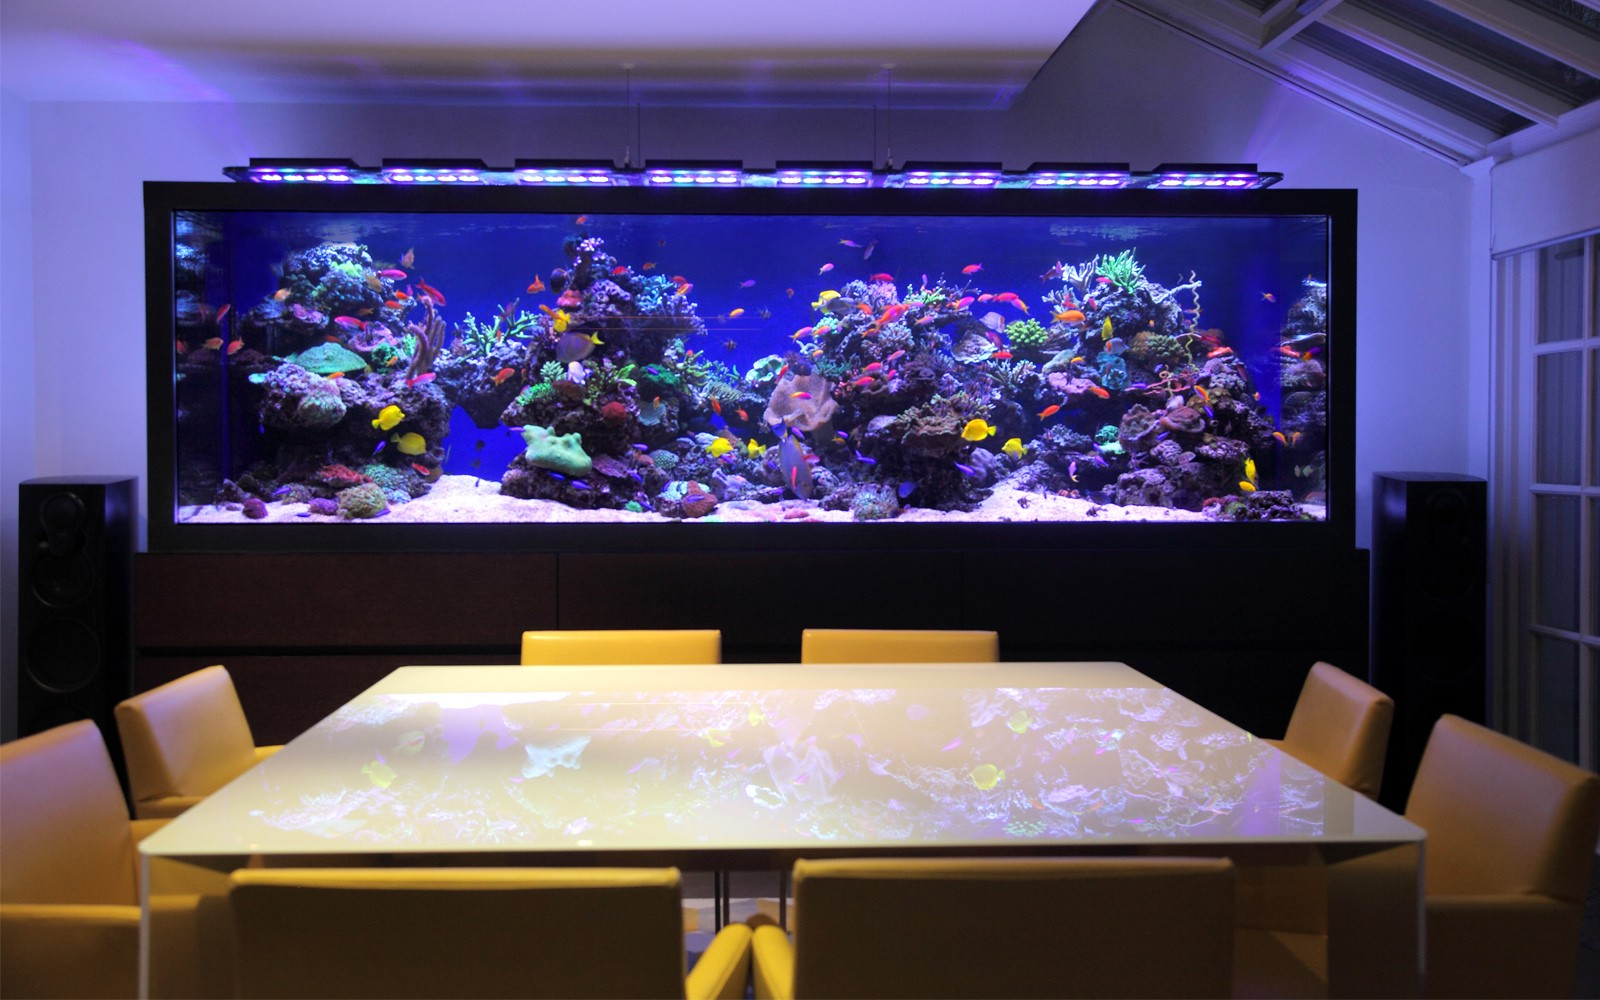 Luxurious custom made aquarium aquarium architecture for Design aquarium